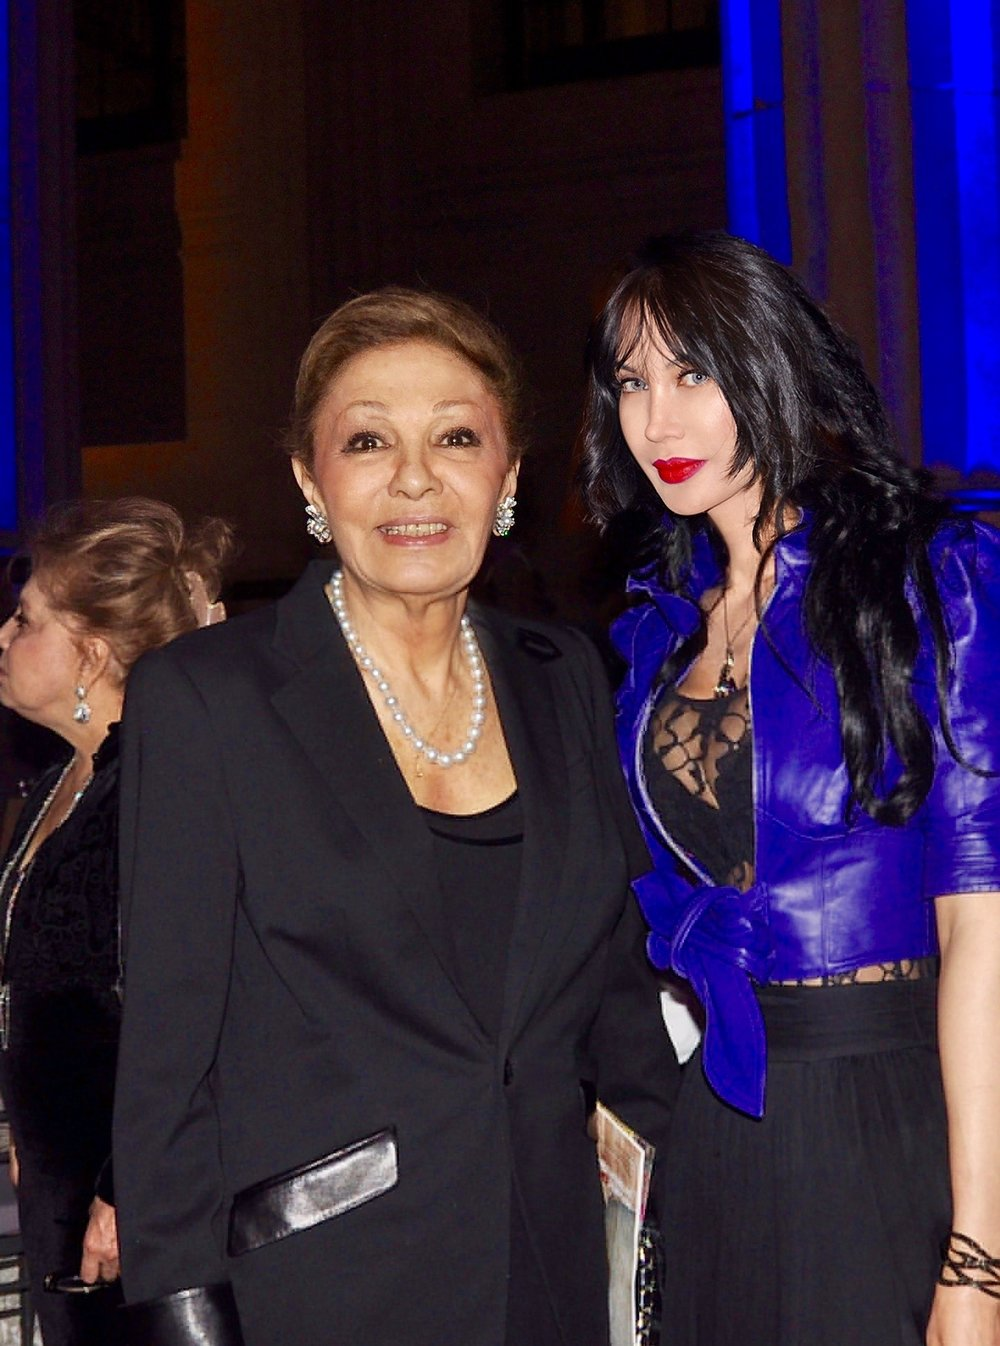 Queen Farah with Refugees International Board Member Demet Öger